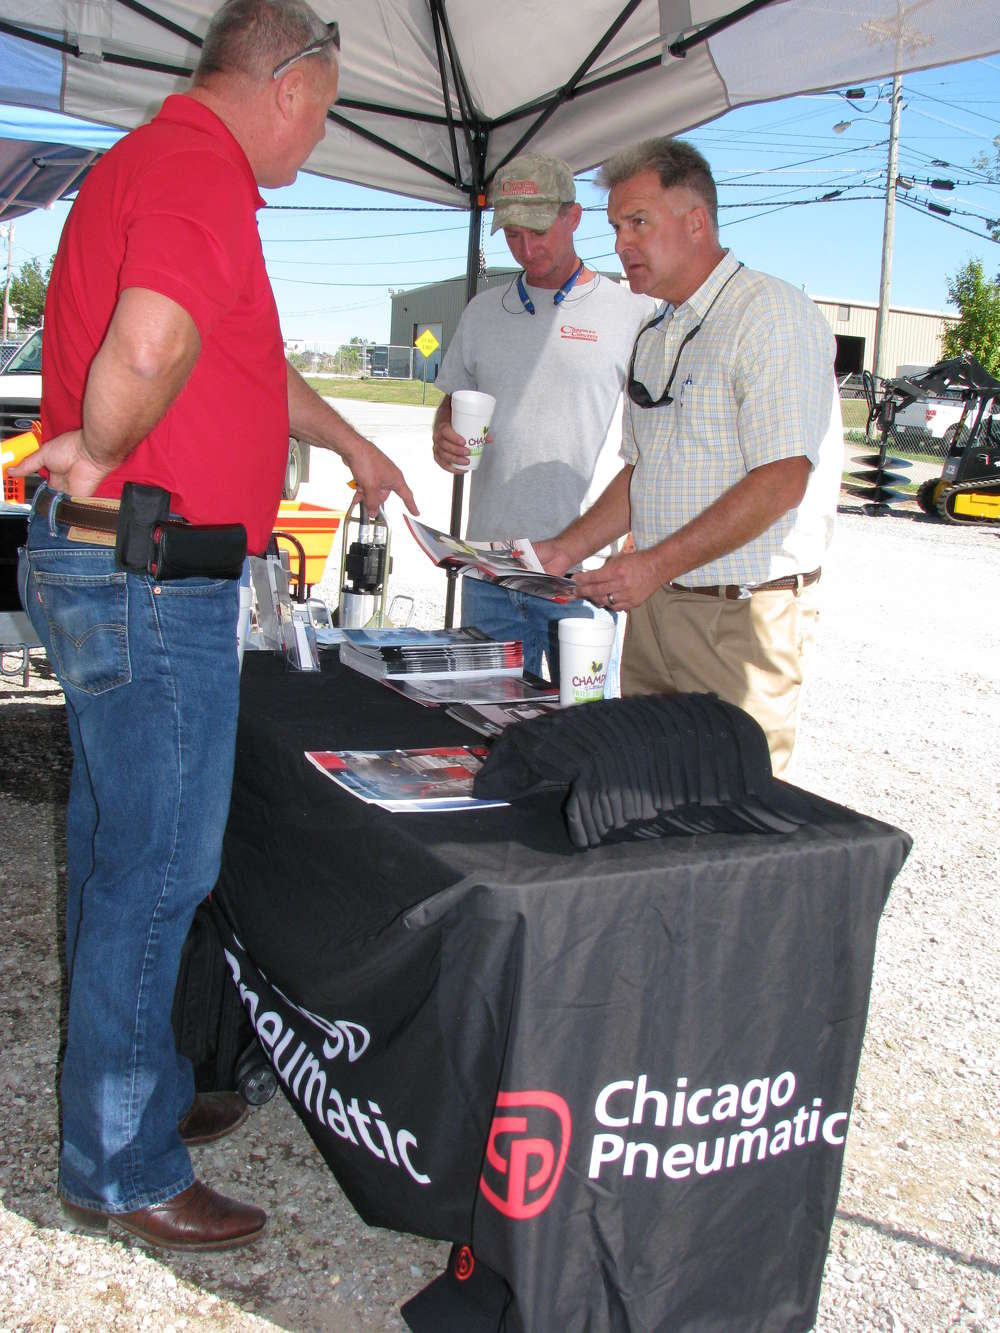 (L-R): Eric Massinon of Chicago Pneumatic, Indianapolis, Ind., fields questions from Larry Allen and Greg Chapman, both of Chapman Concrete Construction, Chattanooga, Tenn., about the company's products.